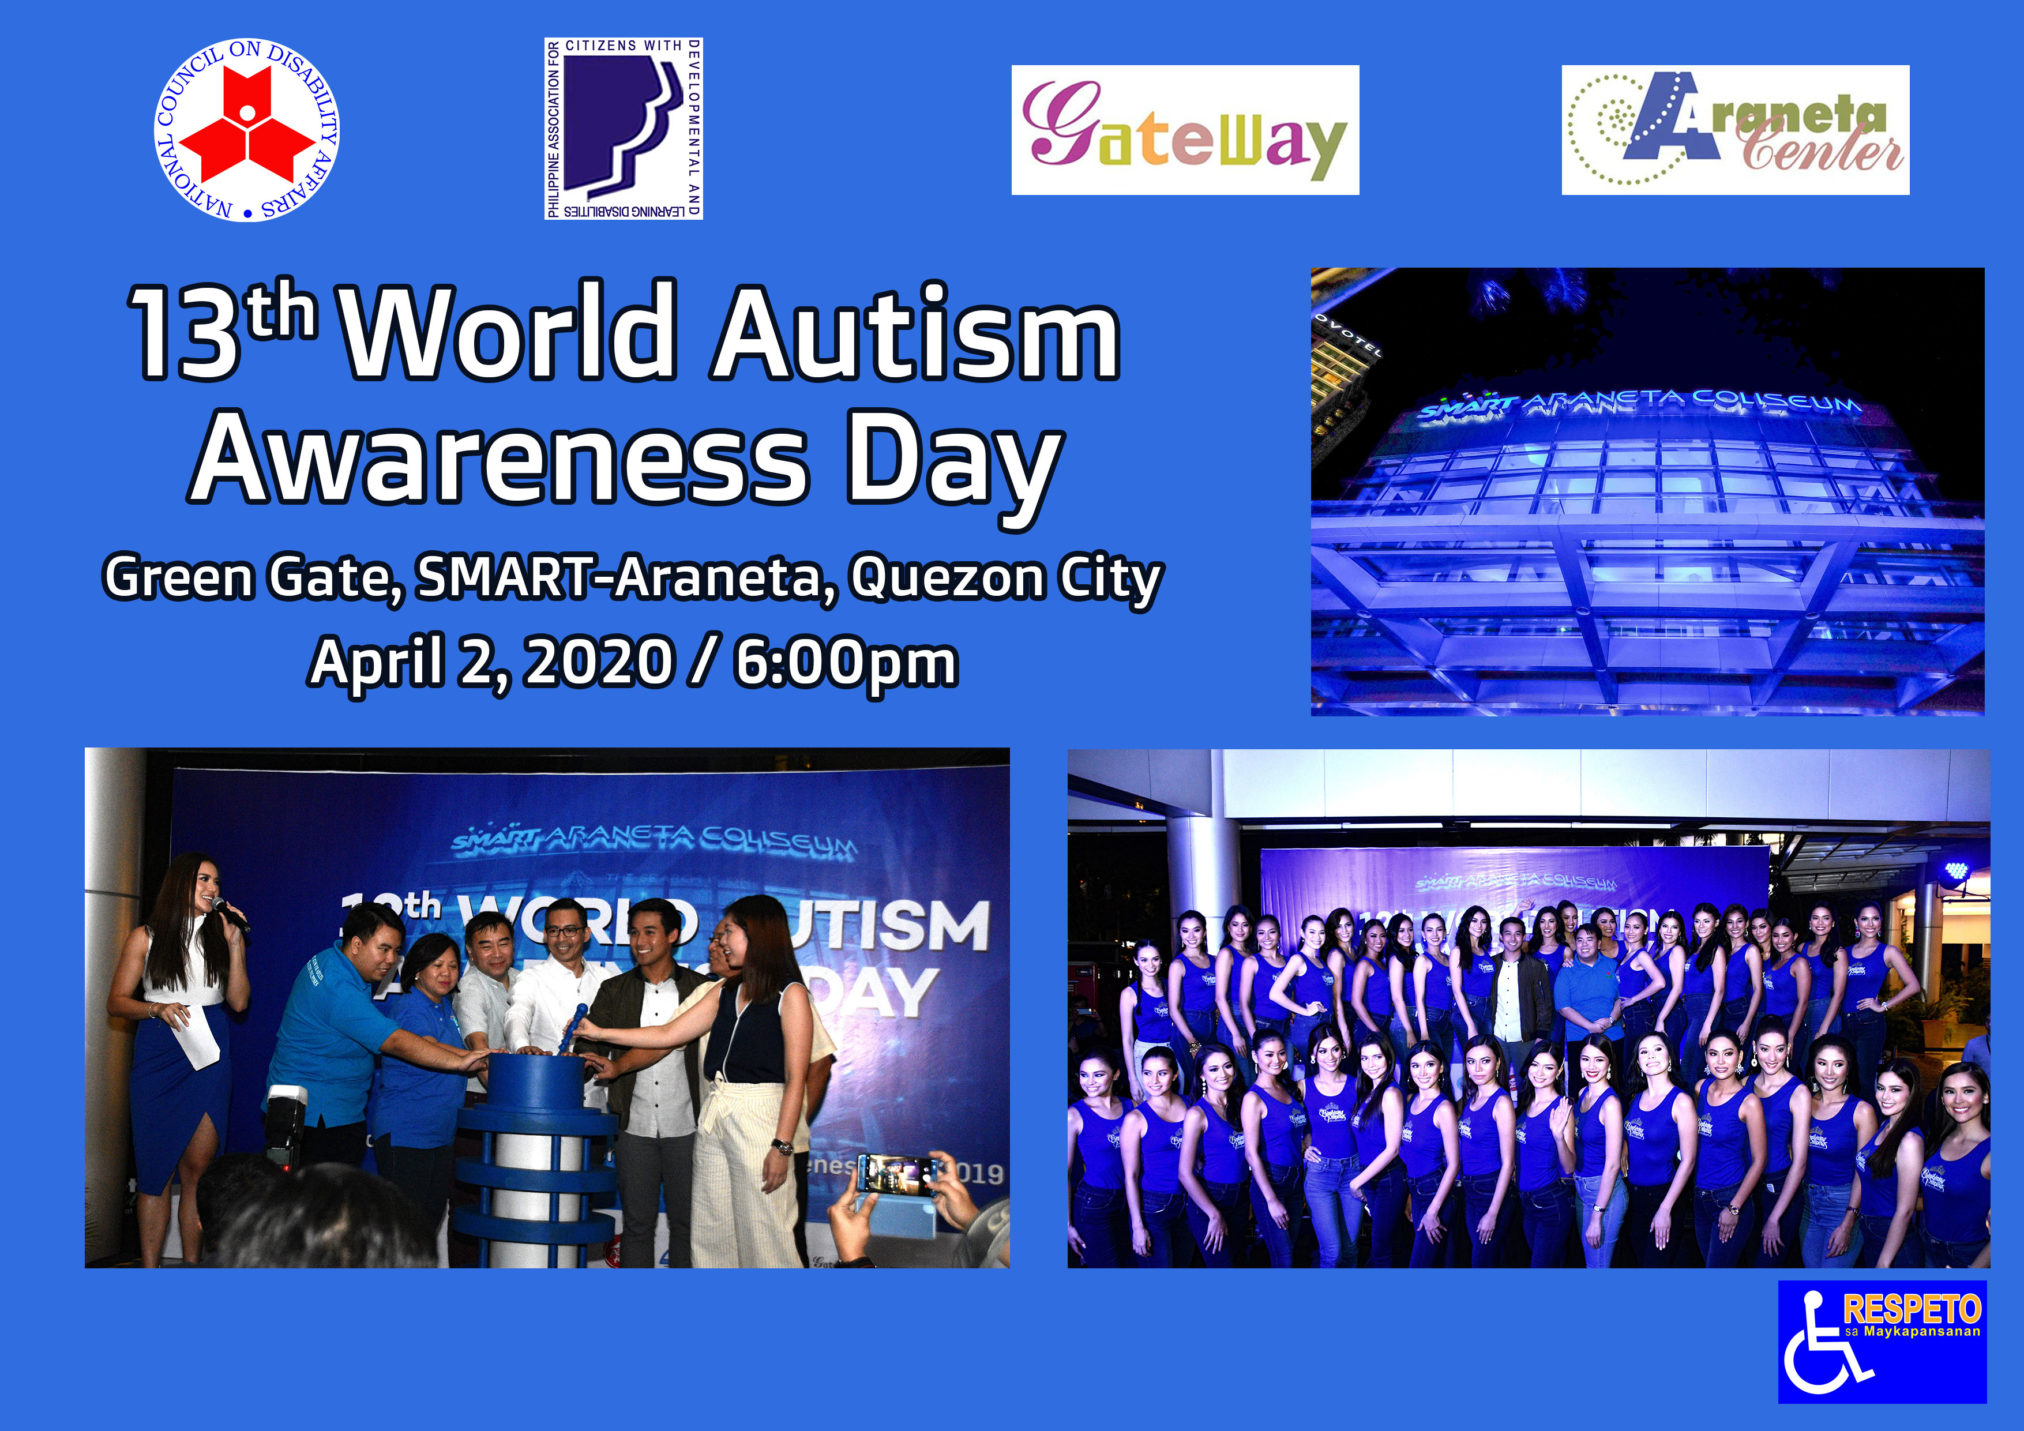 13th World Autism Day April 2, 2020 4pm -6pm